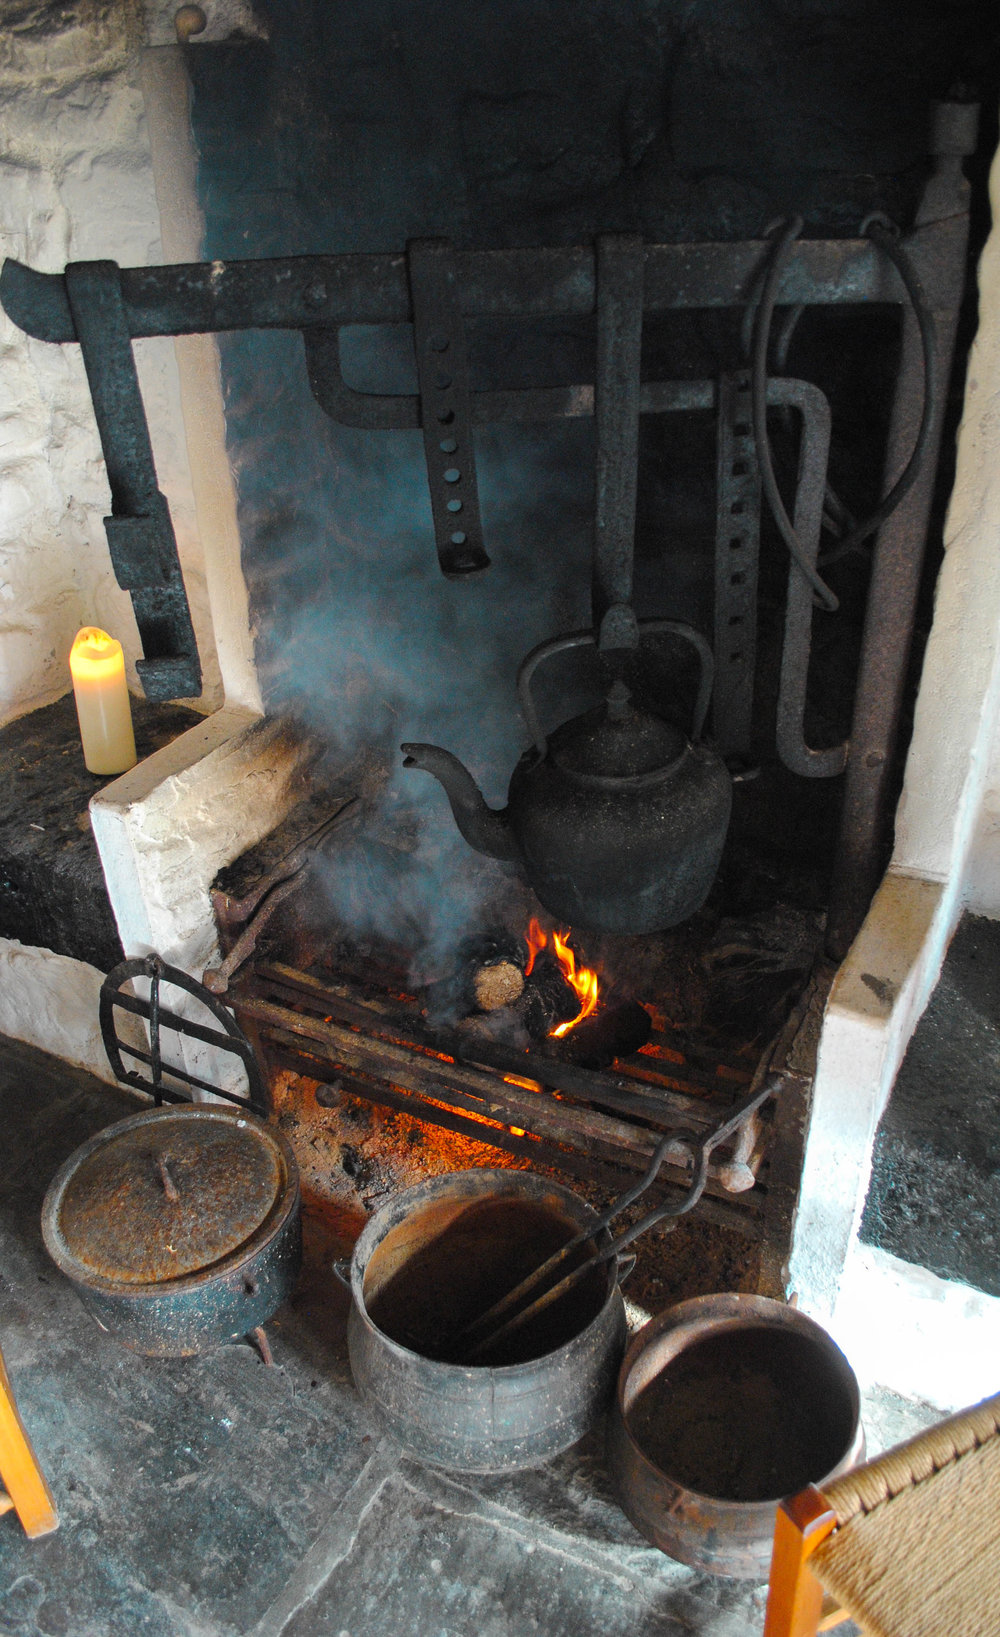 We sell a range of original vintage pots, ovens (bacús) as displayed in photo, and traditional Irish cooking ware. - Prices vary, so fill in form below for items that you are interested in.